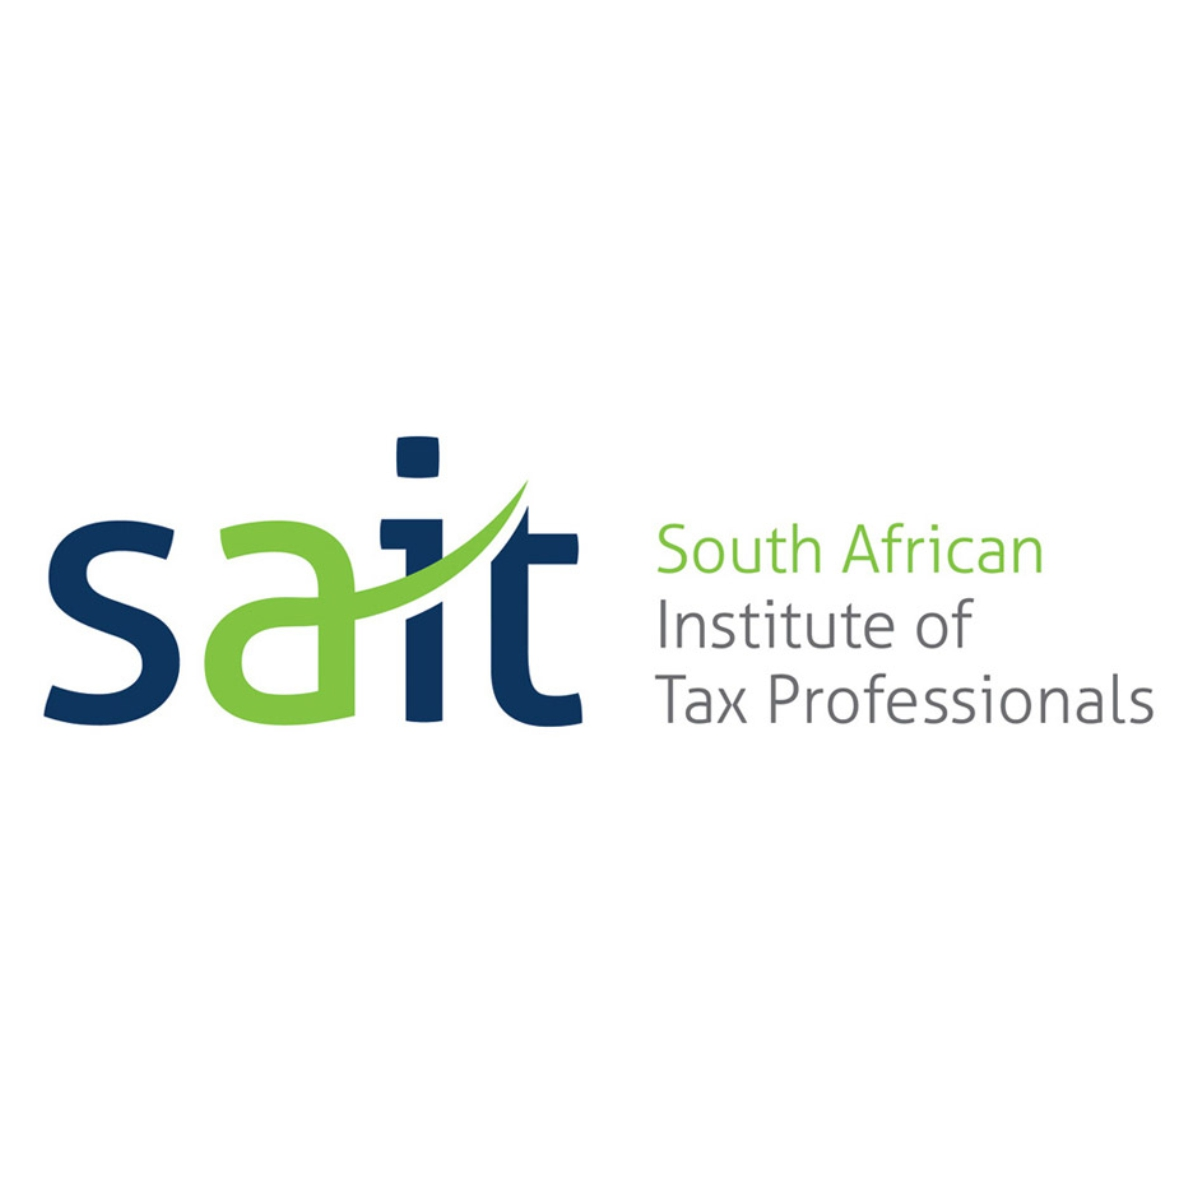 https://fidentis.co.za/wp-content/uploads/2021/03/sait-logo.jpg